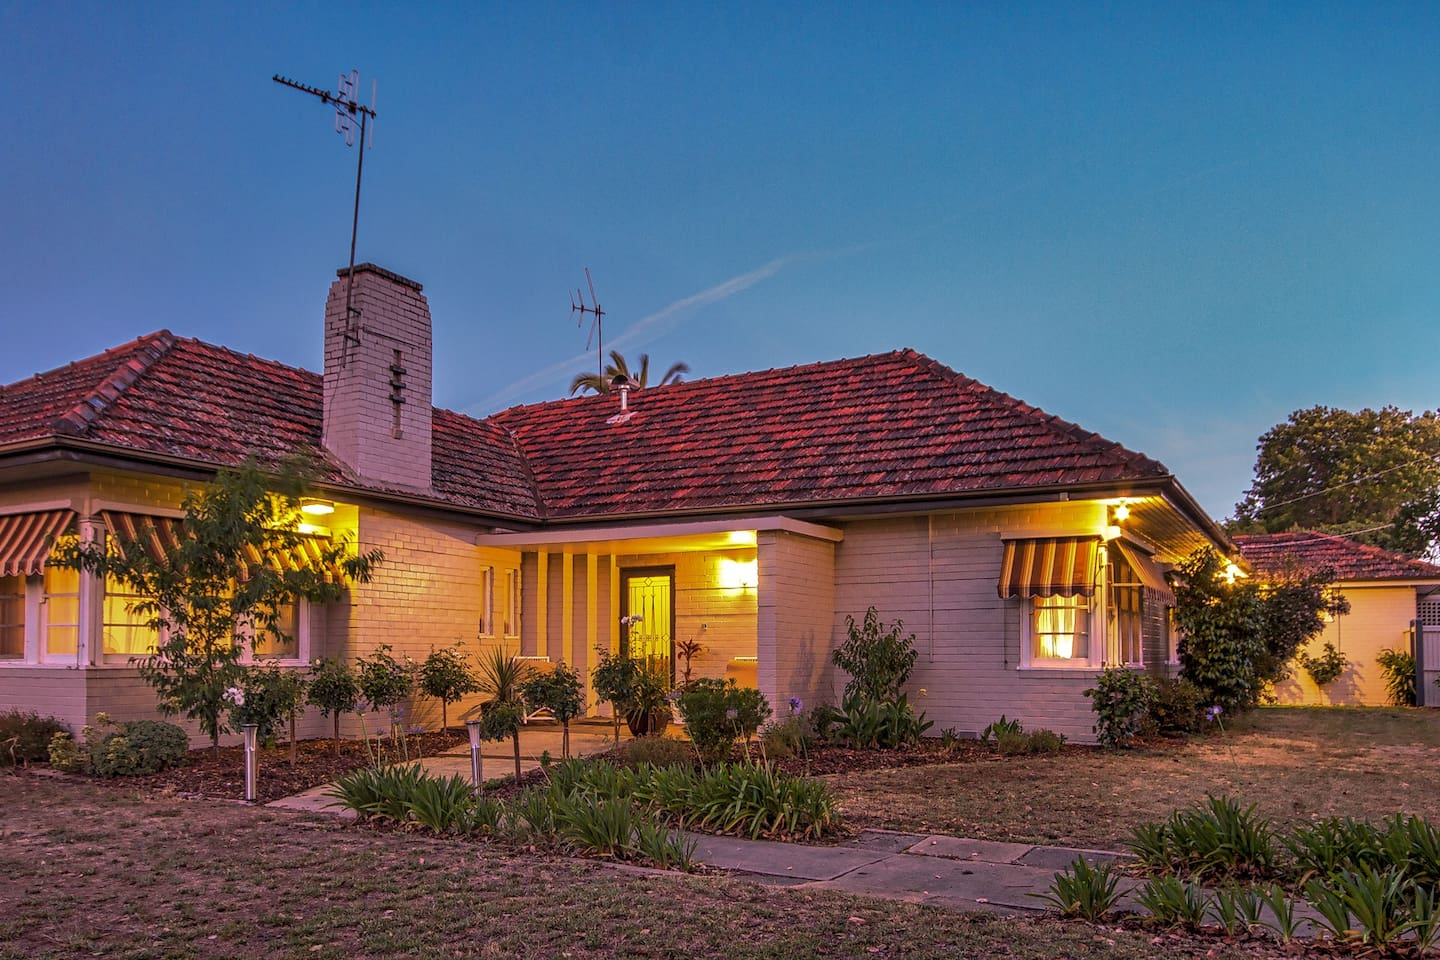 Benson House is a magnificent, spacious art deco home with all amenities